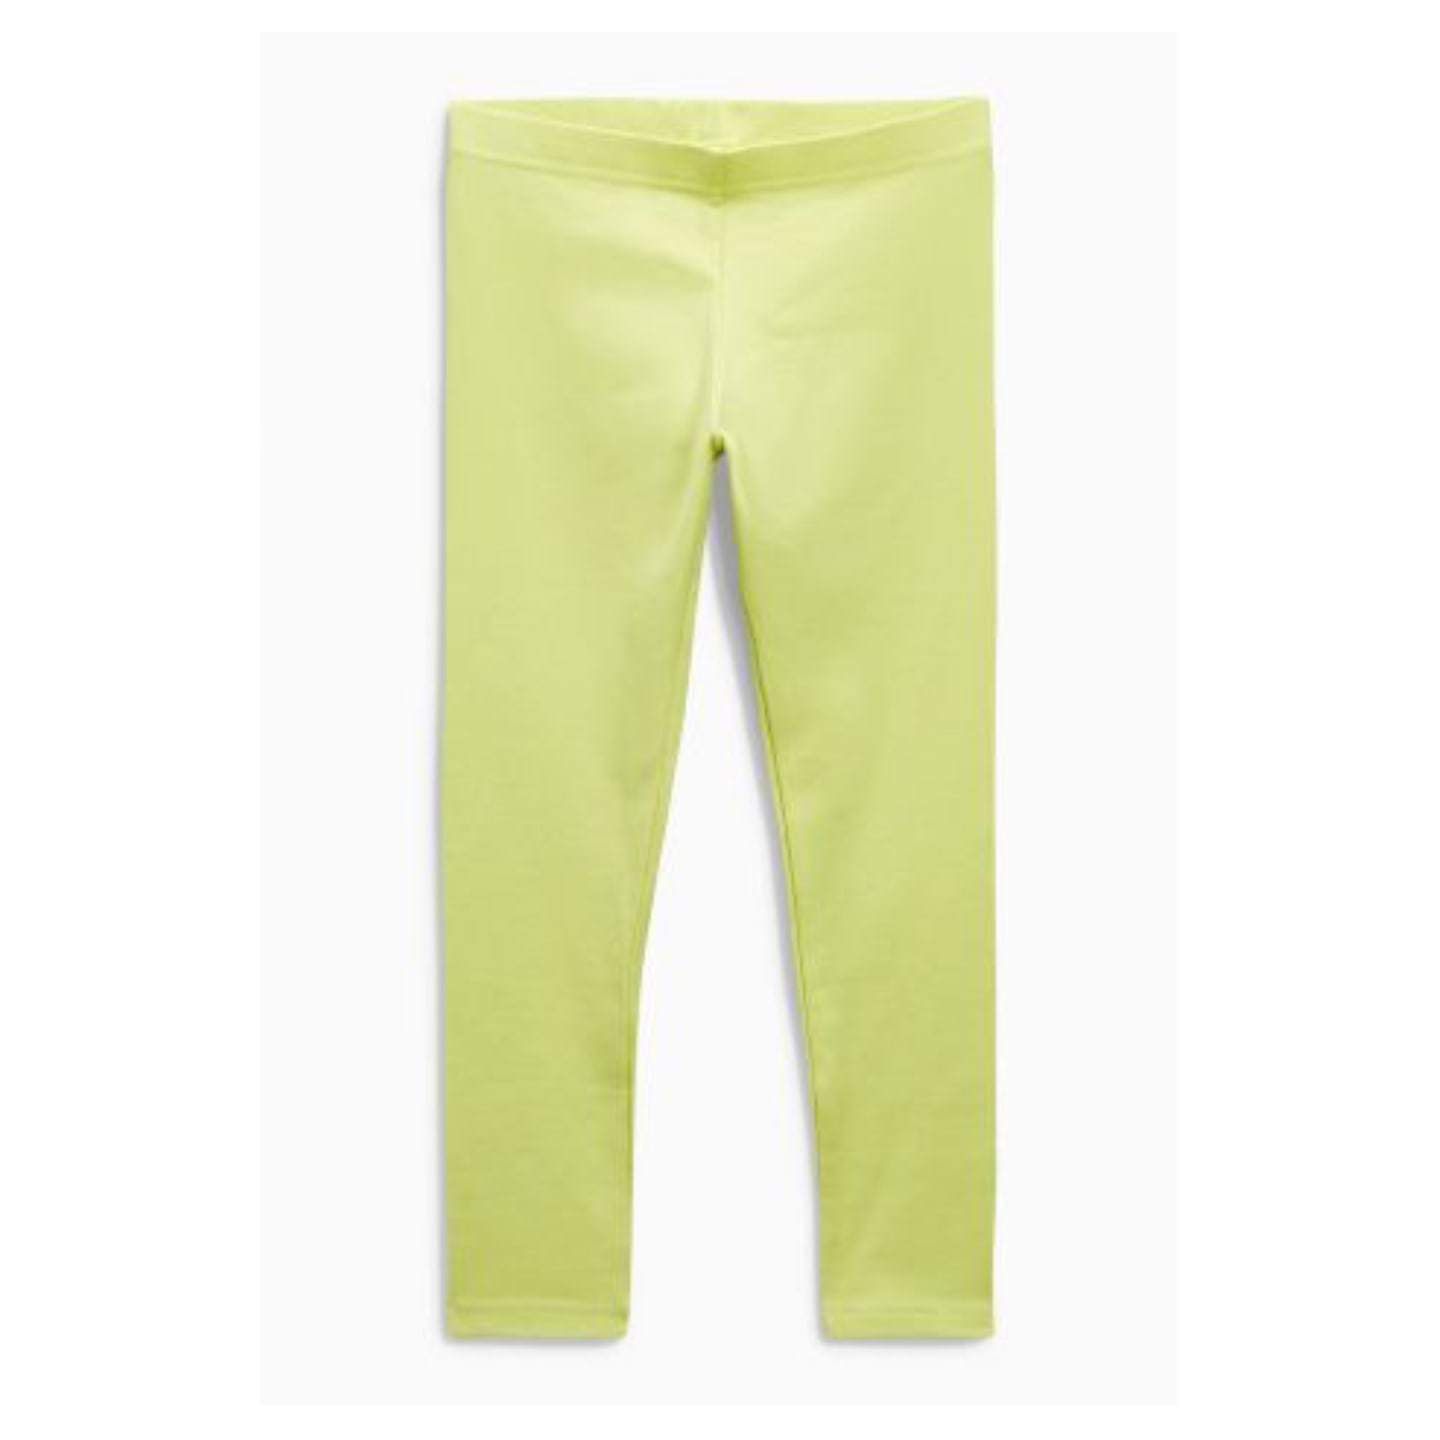 Next Lime Leggings - Stockpoint Apparel Outlet